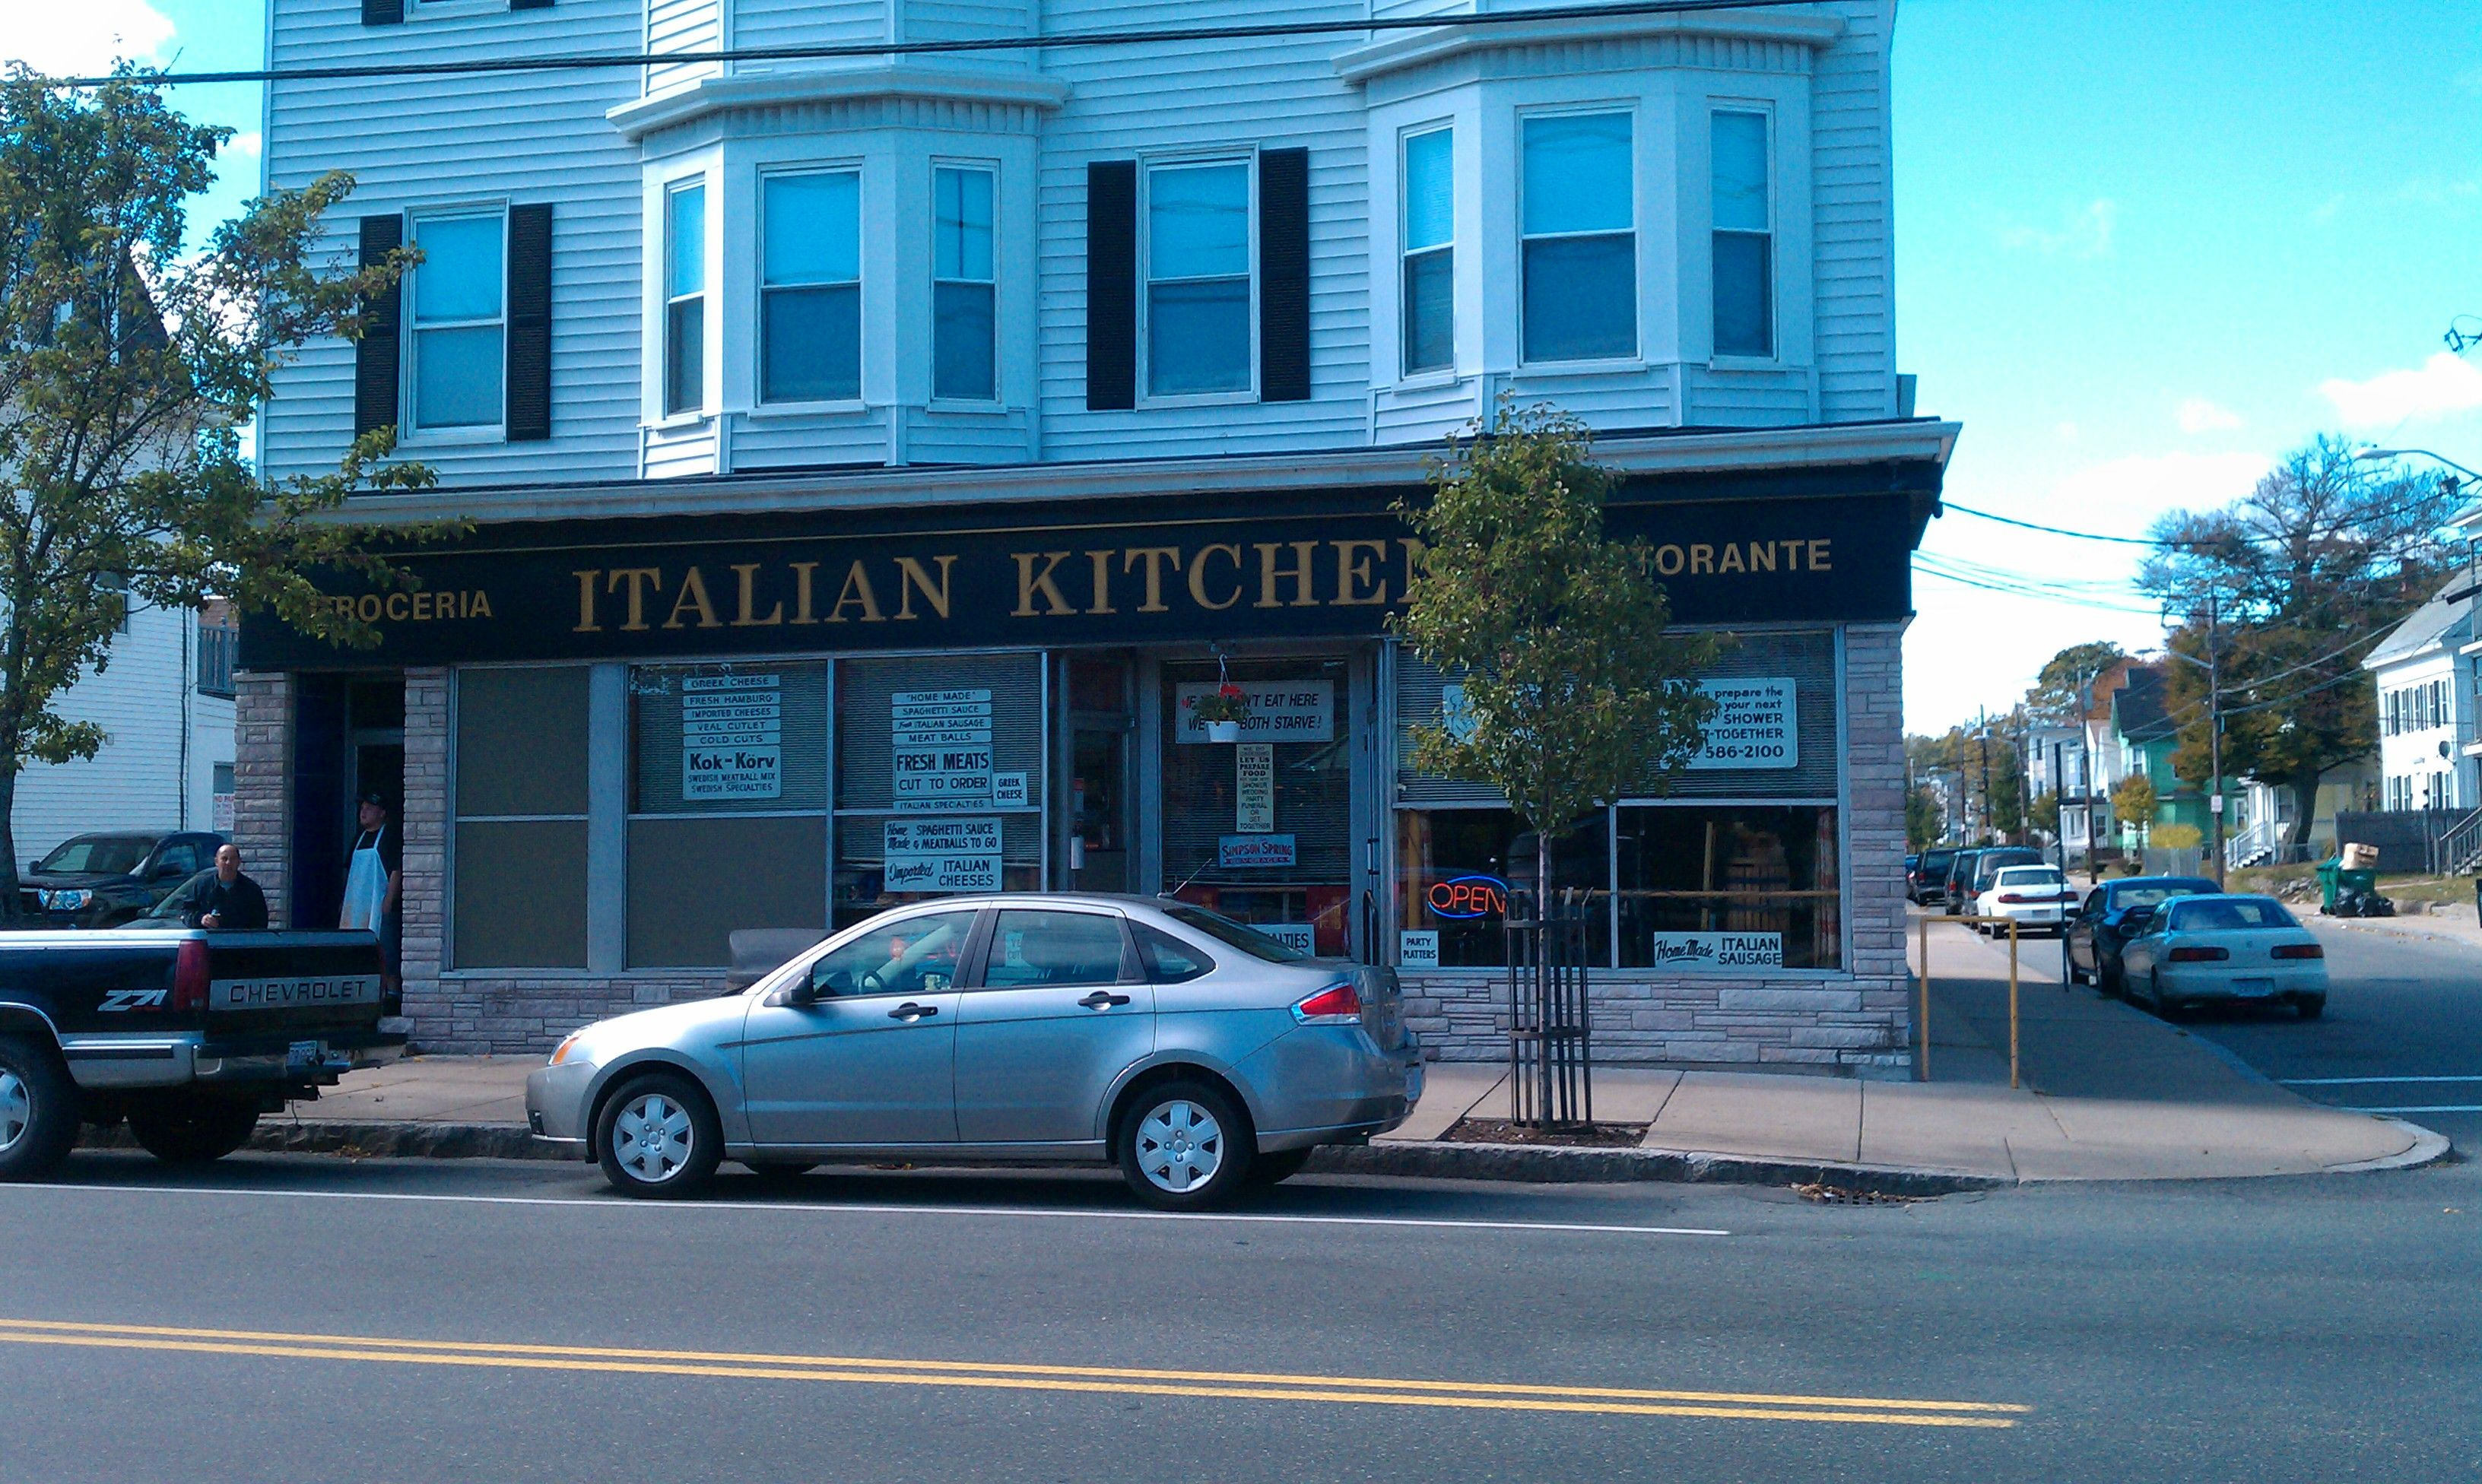 Italian Kitchen, Brockton  фото ресторана  Tripadvisor